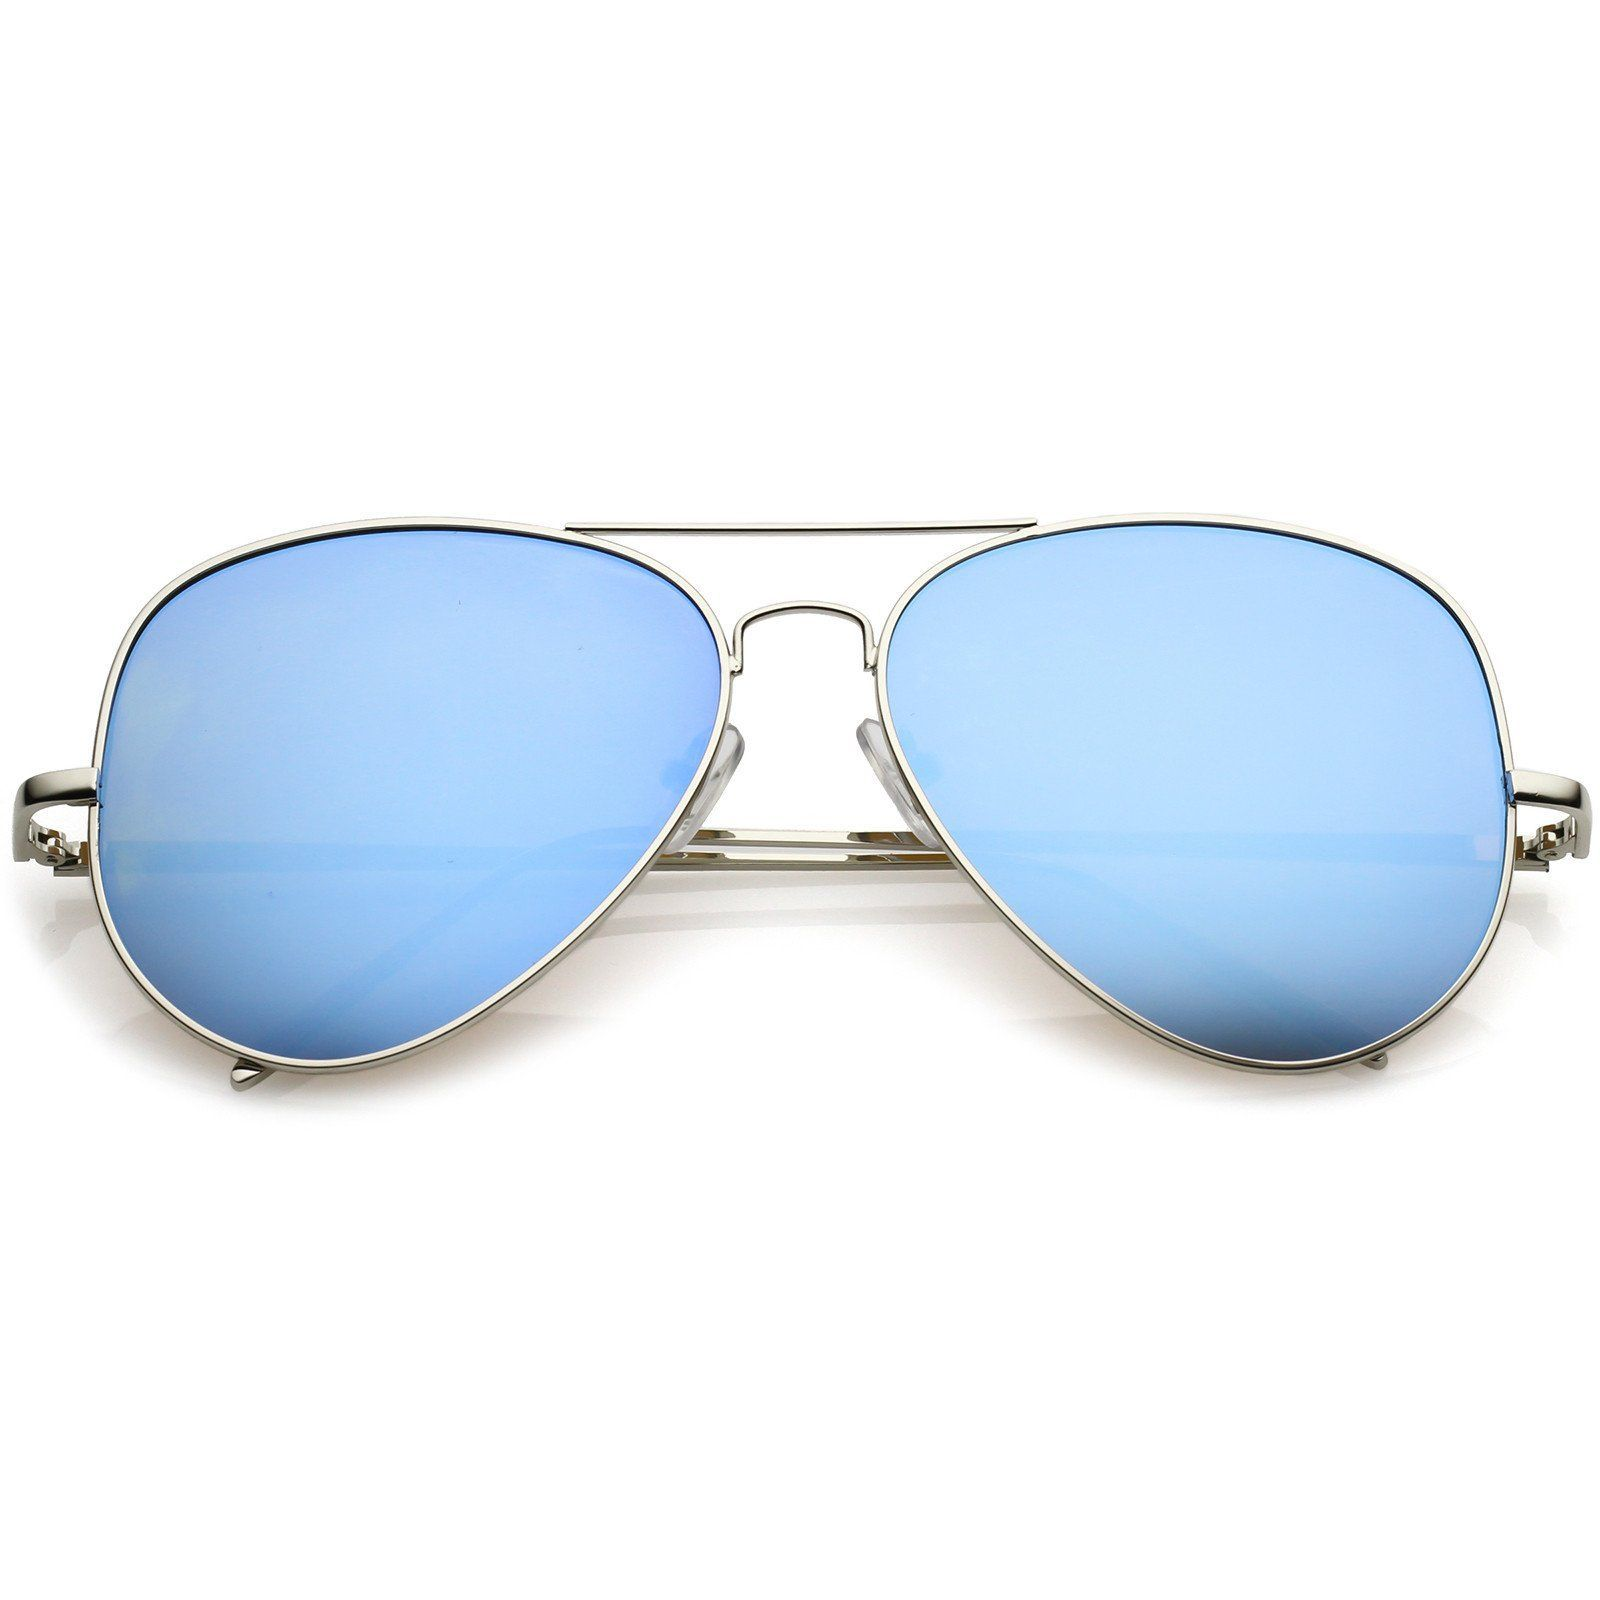 fac20df22a0 Classic Metal Aviator Sunglasses Double Nose Bridge Color Mirror Flat Lens  59mm  sunglass  sunglasses